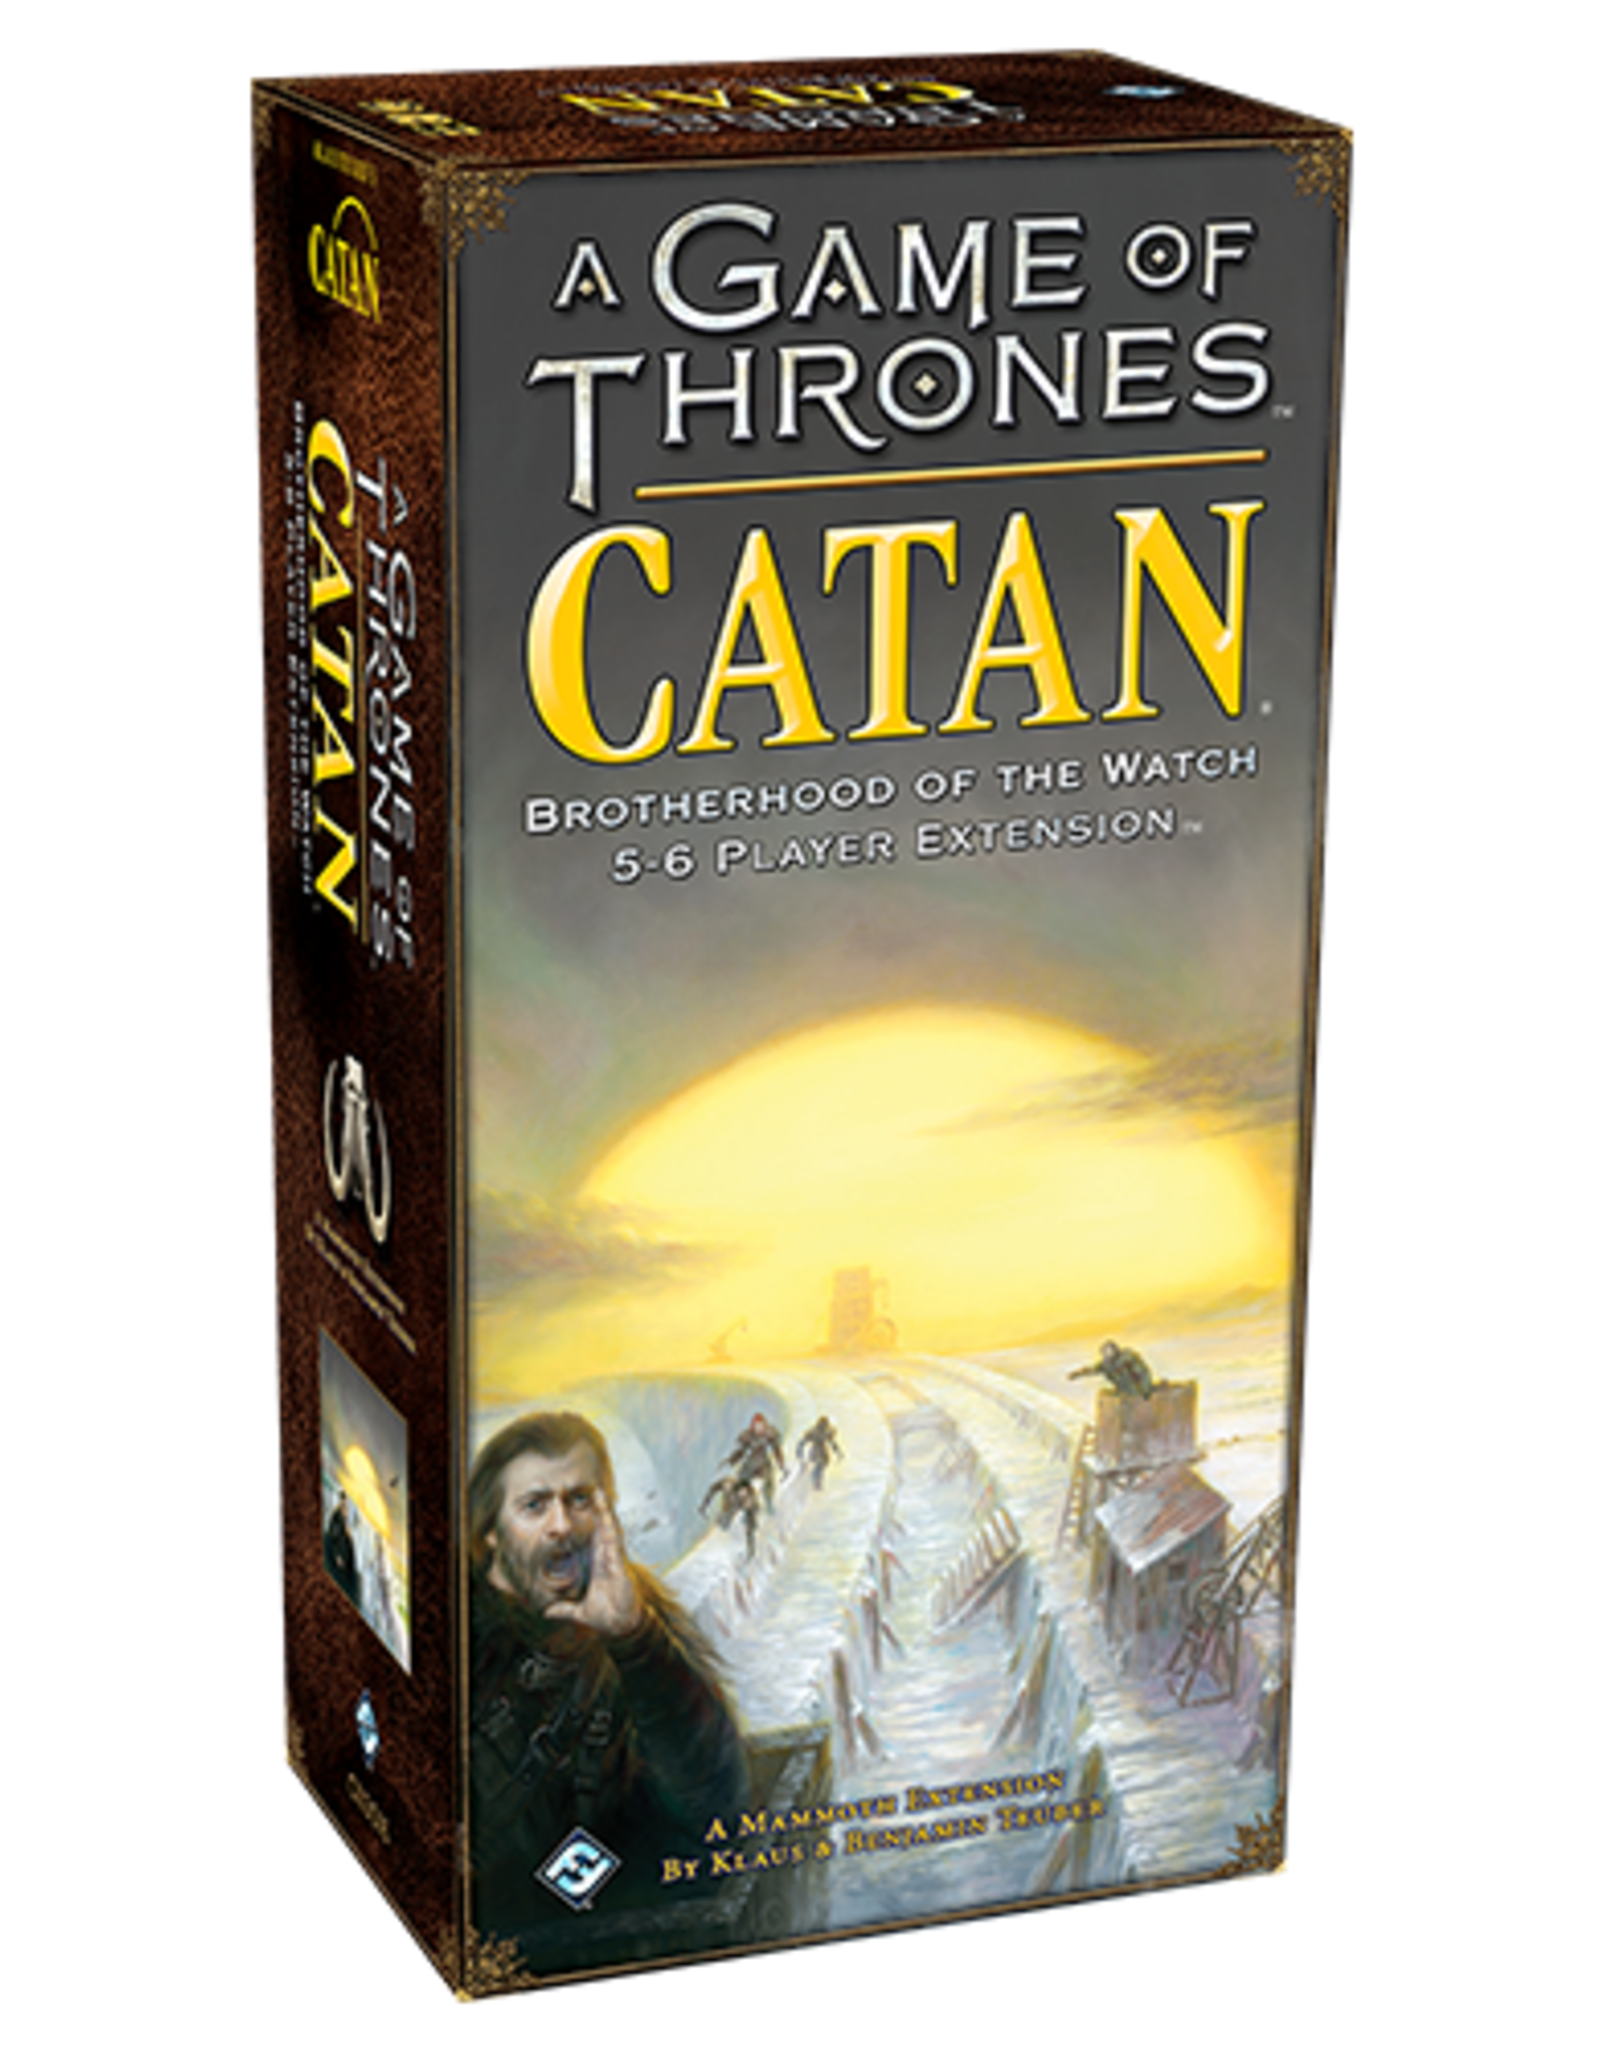 Catan Studios Game of Thrones Catan: Brotherhood of the Watch 5-6 Player Extension